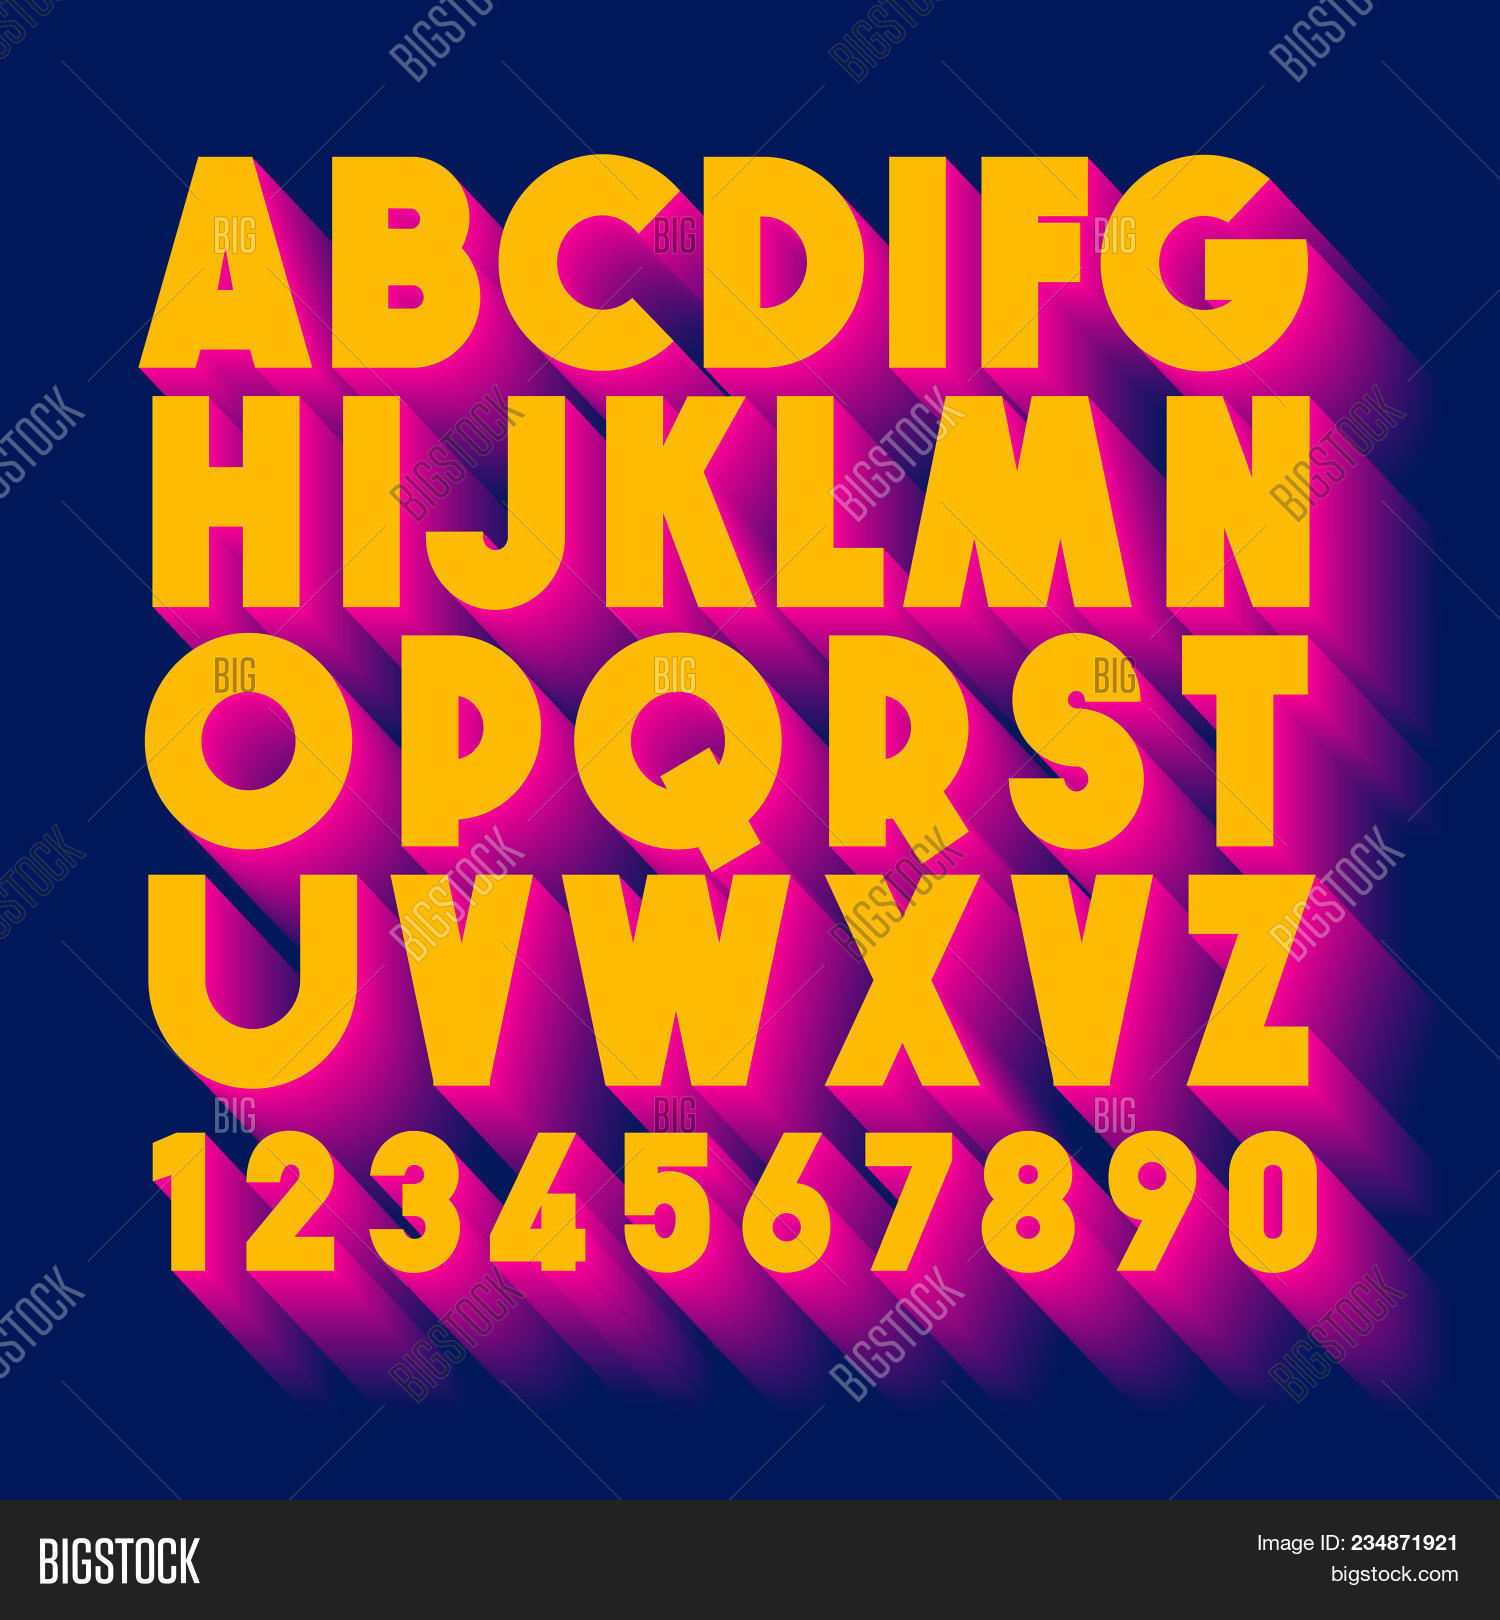 3d,abstract,alphabet,background,bold,color,colorful,creative,decorative,design,education,font,geometry,graphic,kids,letter,orange,perspective,pink,poster,psychedelic,school,set,shadows,sign,style,symbol,text,type,typographic,typography,vector,word